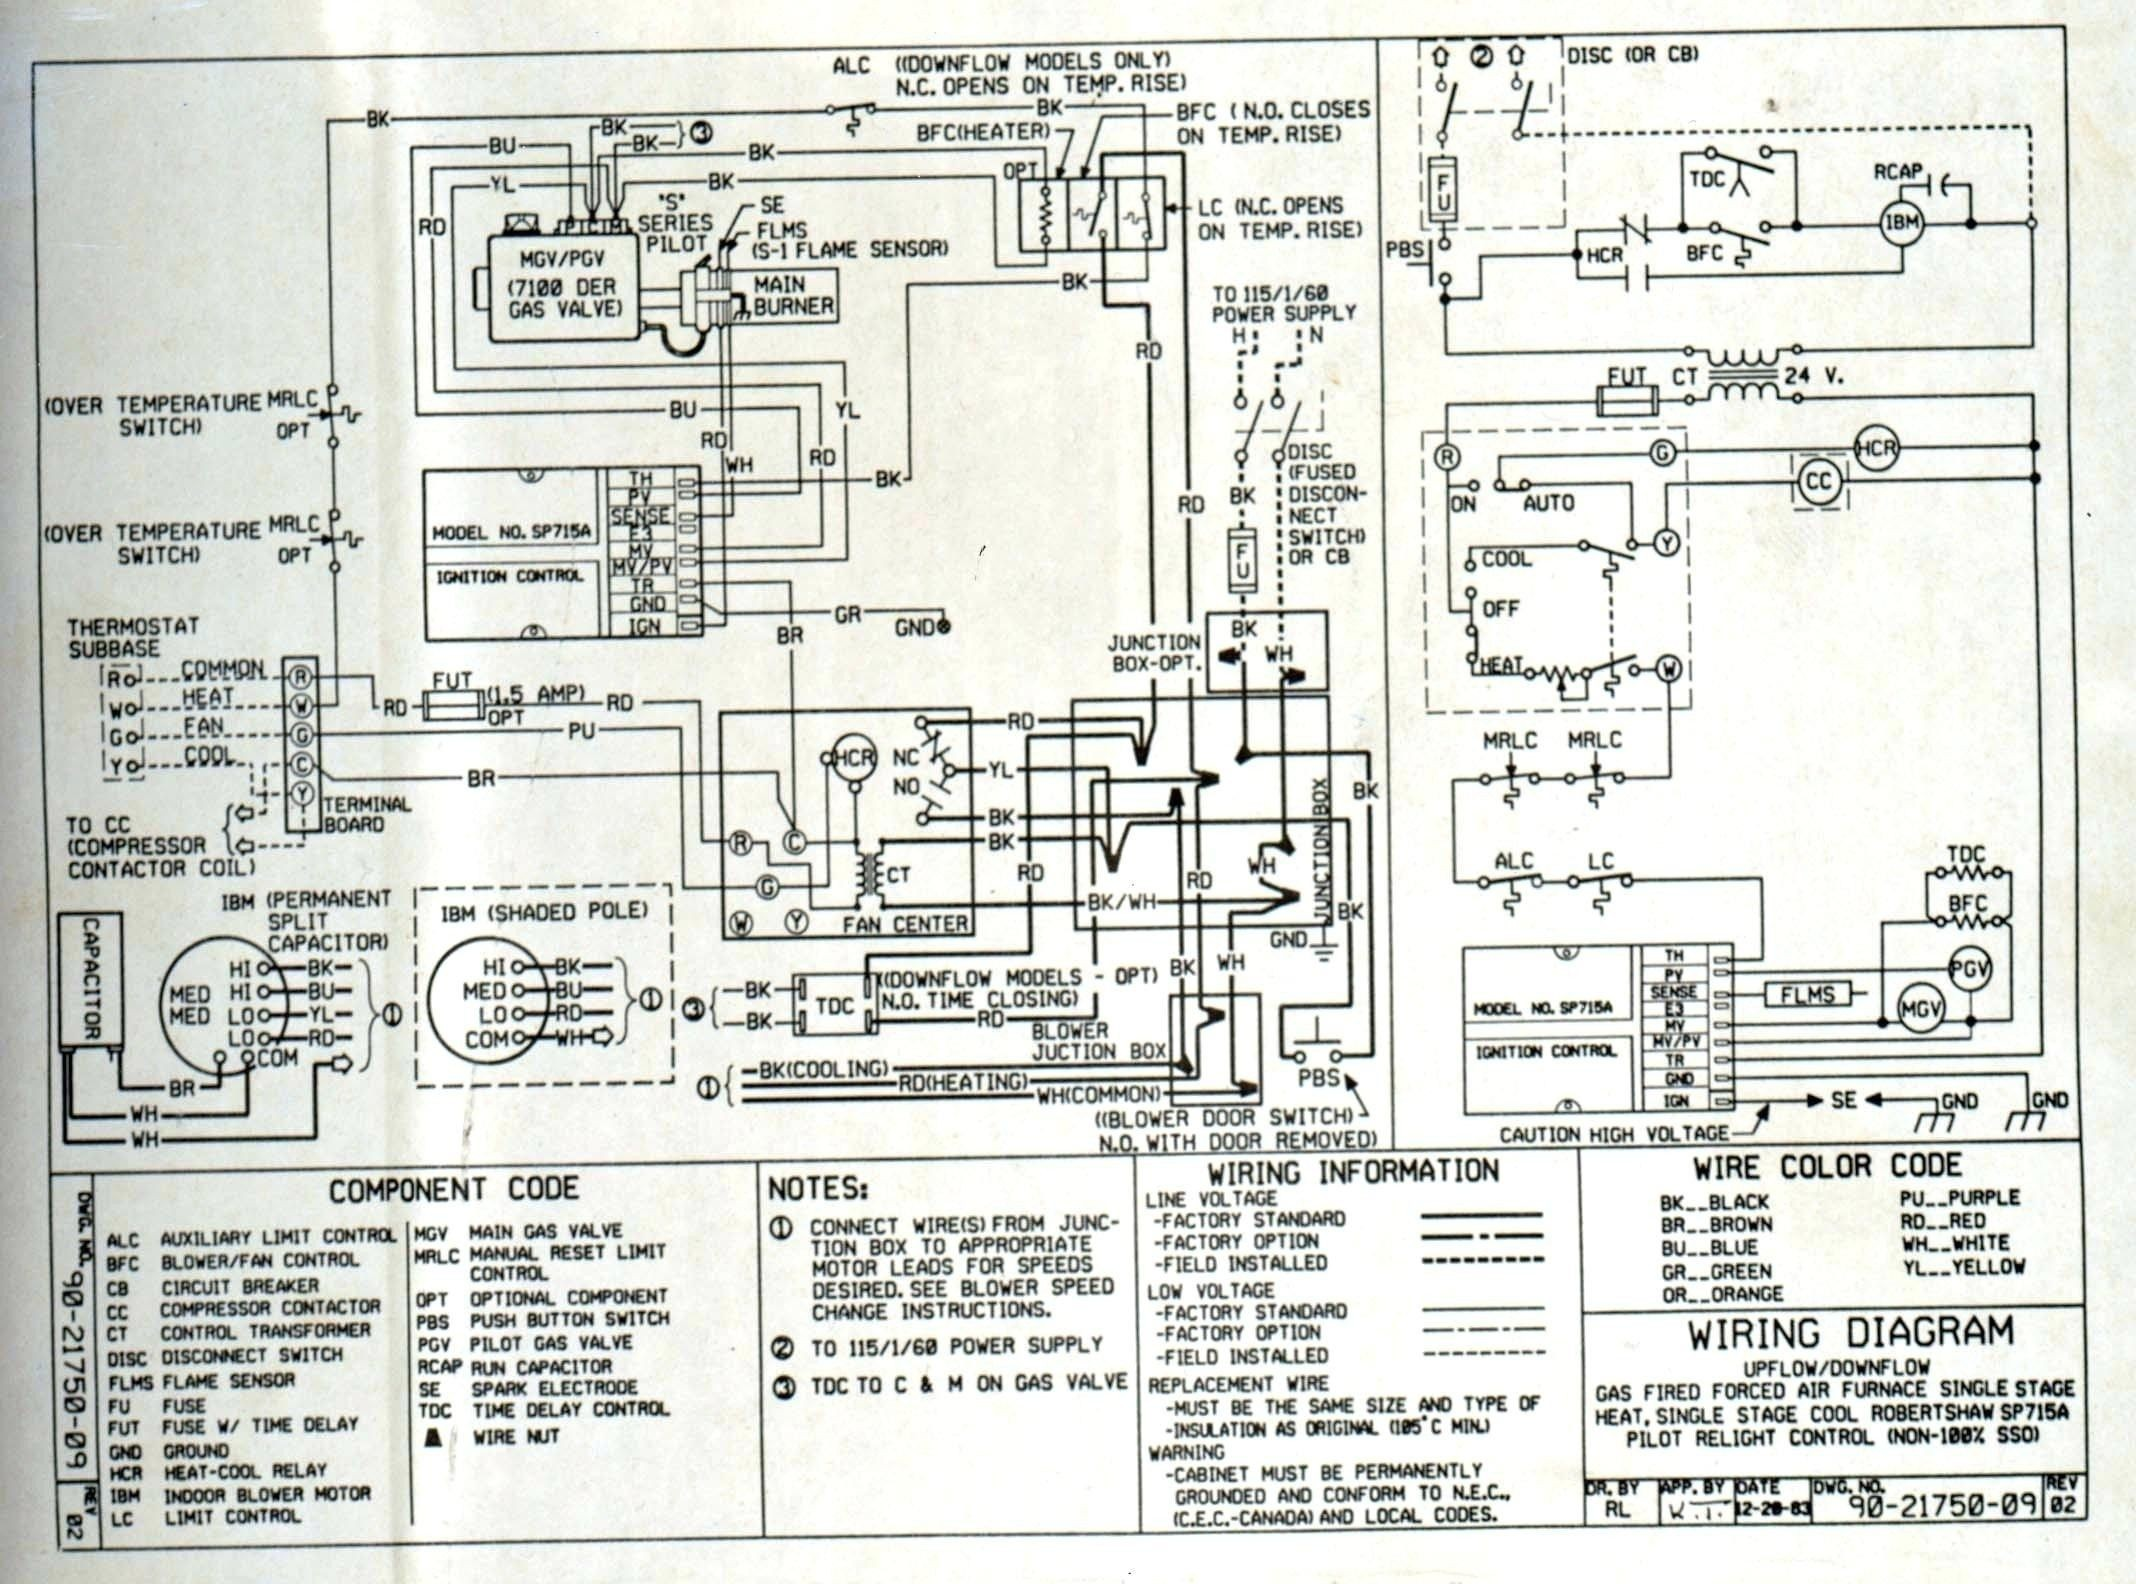 2004 Grand Cherokee Electrical Diagram 16 Wiring Diagram for Electric Fireplace Heater Of 2004 Grand Cherokee Electrical Diagram